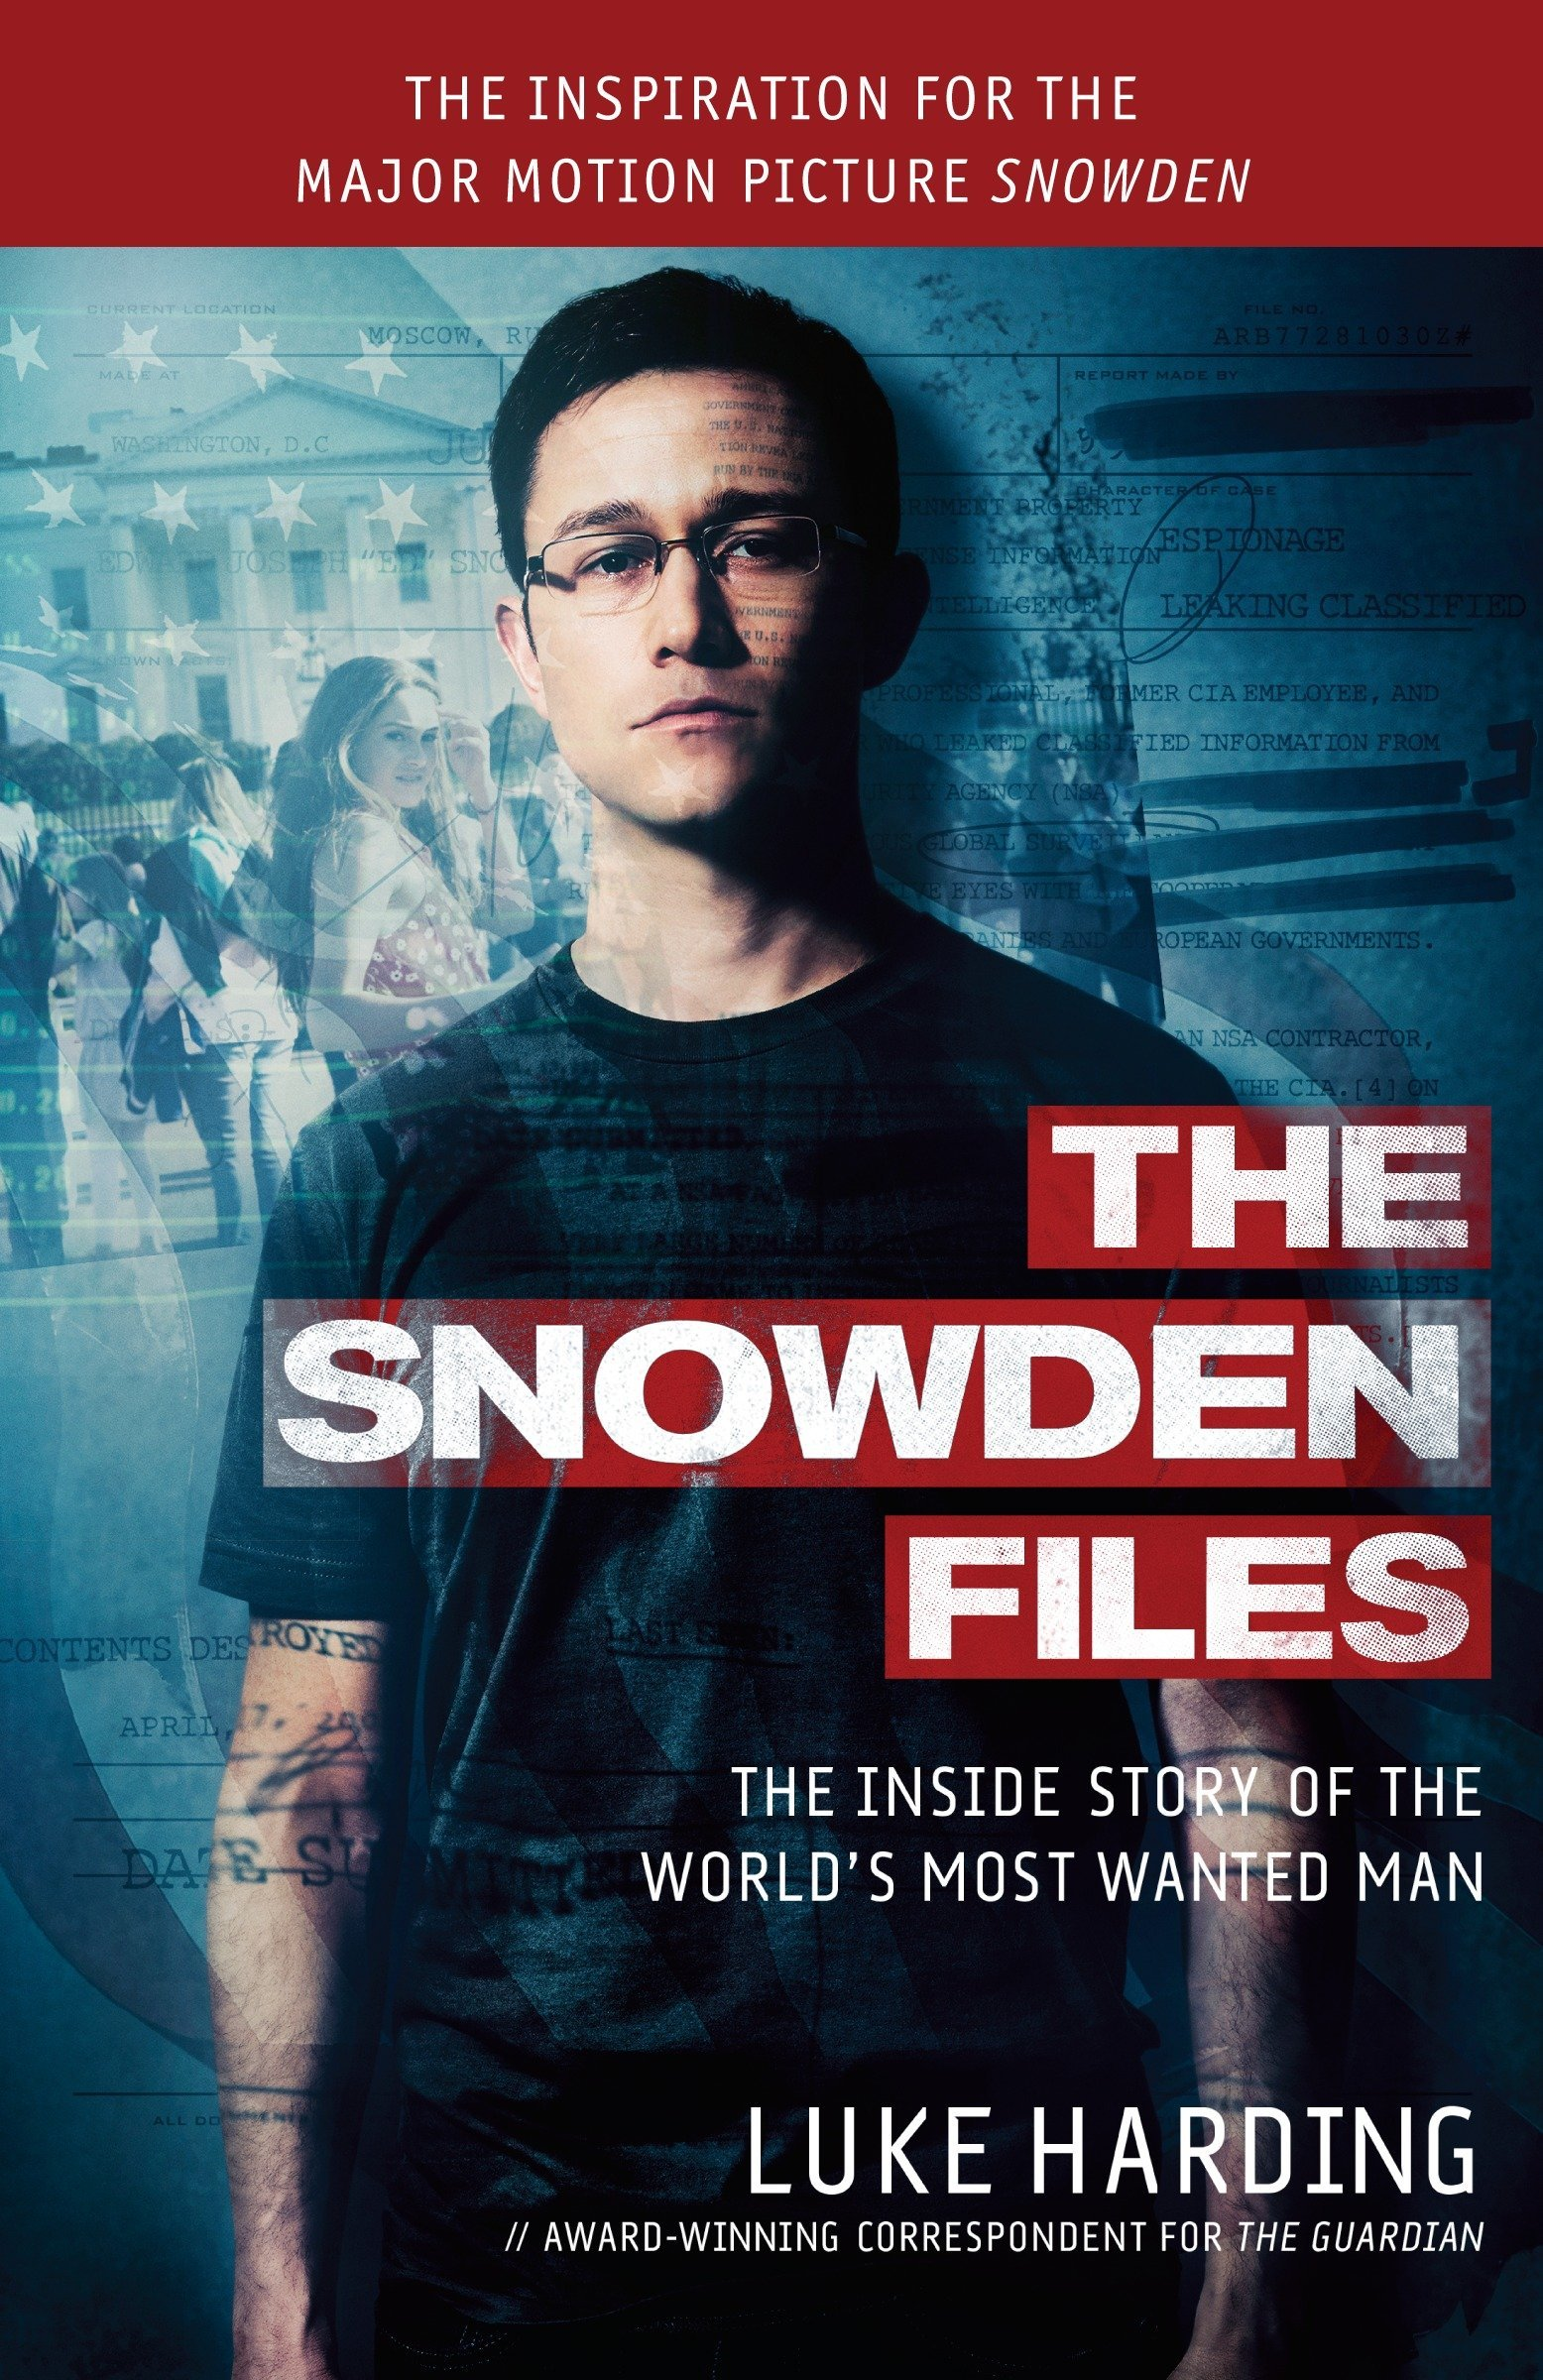 Download The Snowden Files (Movie Tie In Edition): The Inside Story of the World's Most Wanted Man PDF